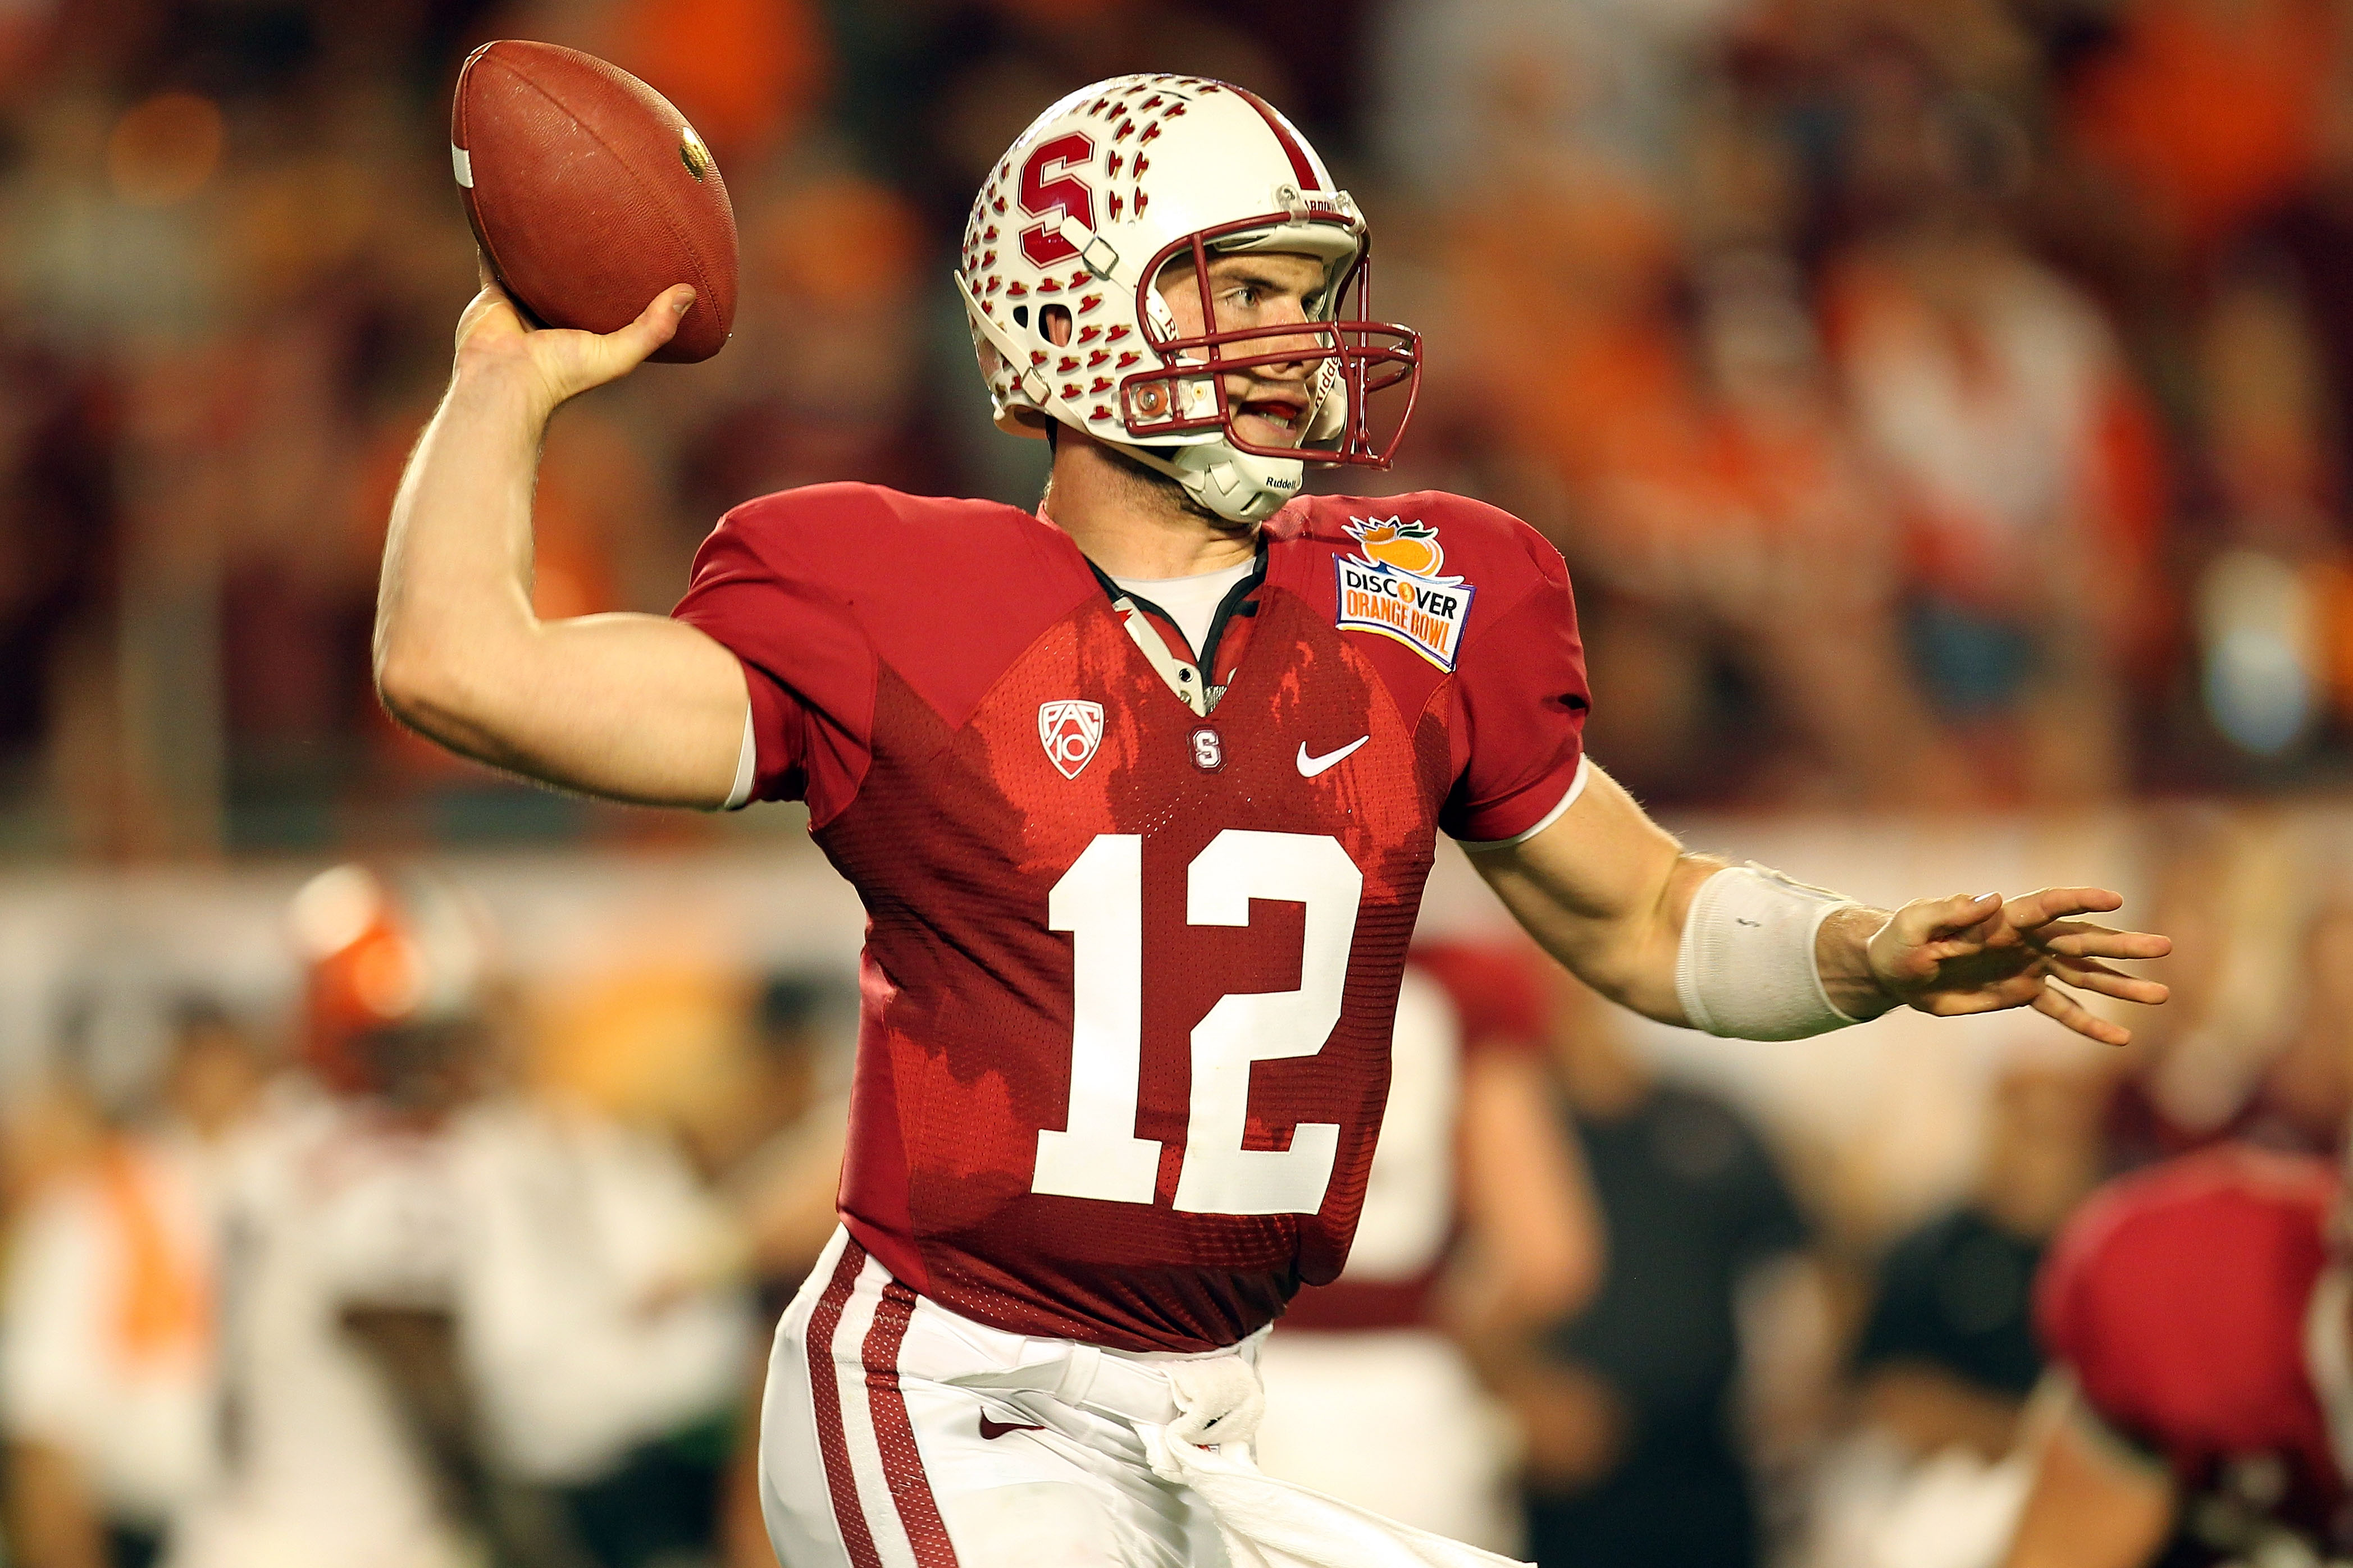 Andrew Luck Stanford Cardinal Football Jersey - Red